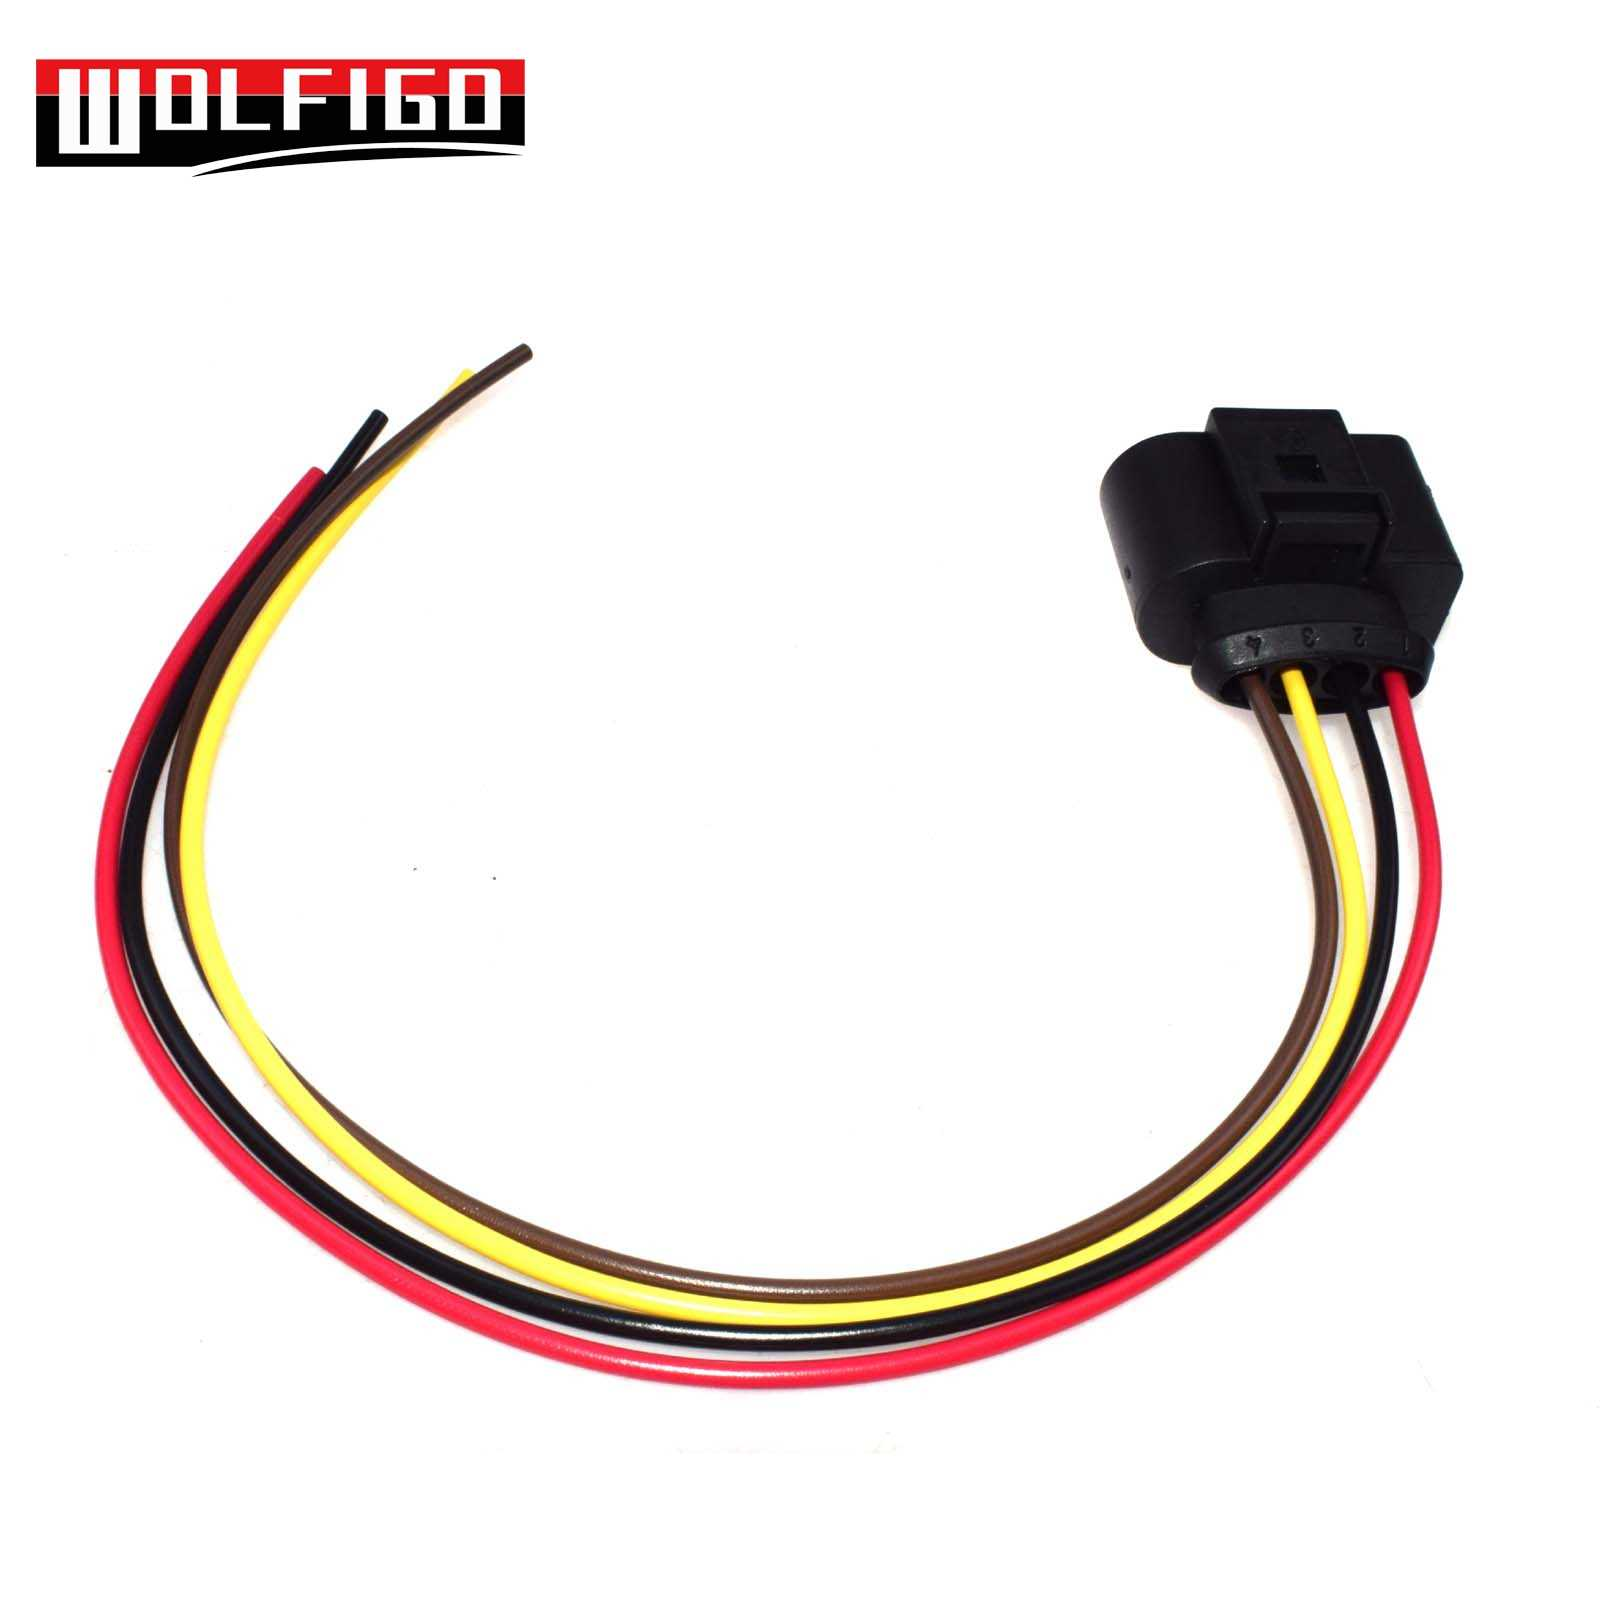 medium resolution of  wolfigo new ignition coil connector repair kit harness plug wiring for audi vw skoda